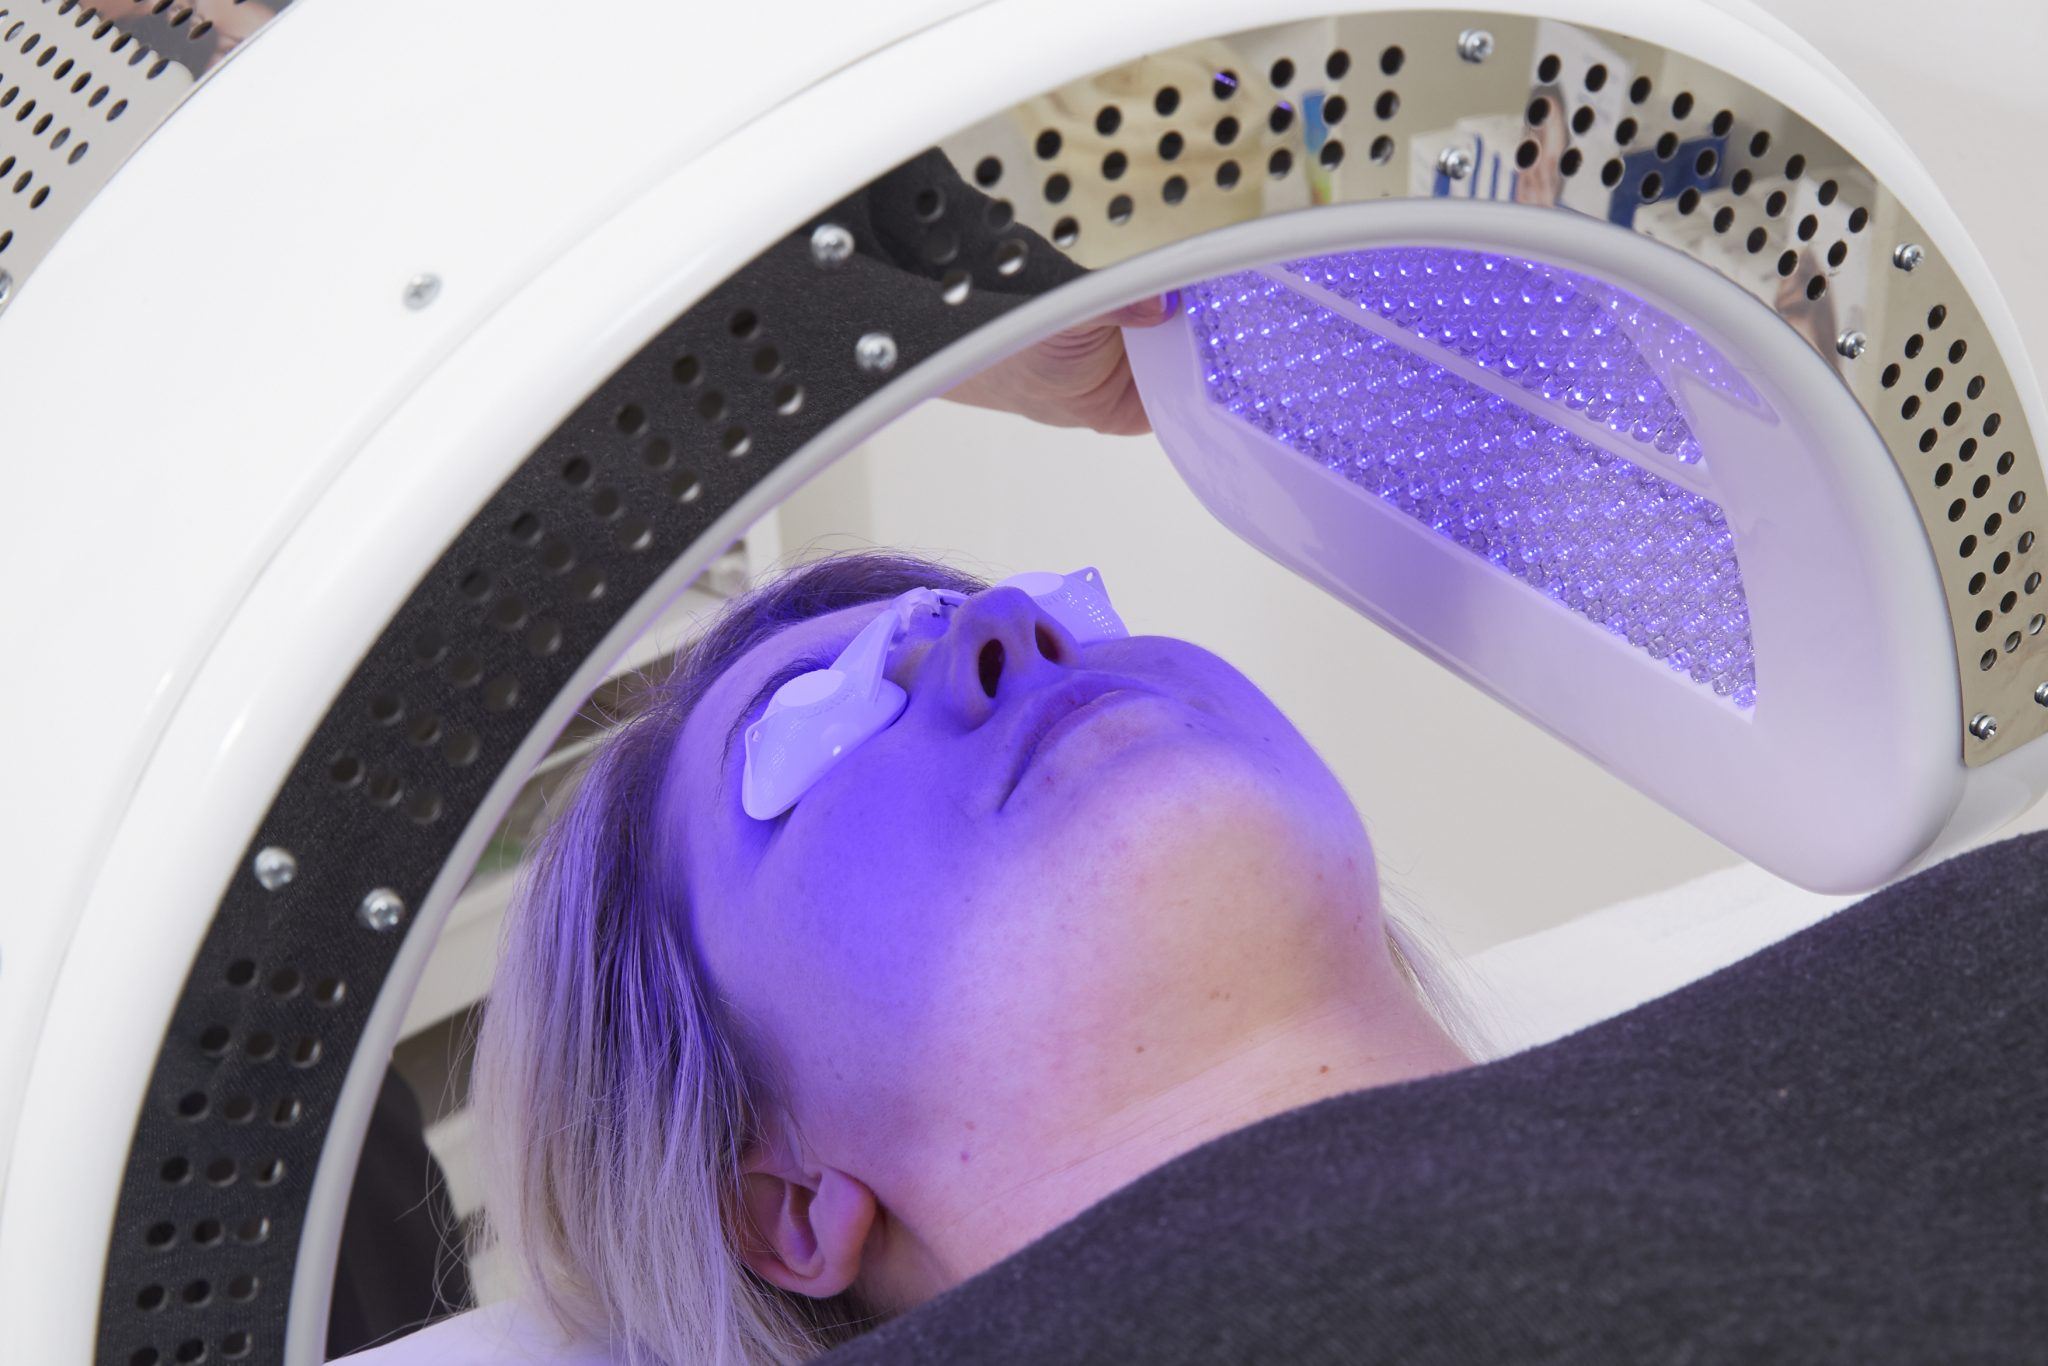 Dermalux LED phototherapy skin treatment at MySkyn Clinic in Bradford